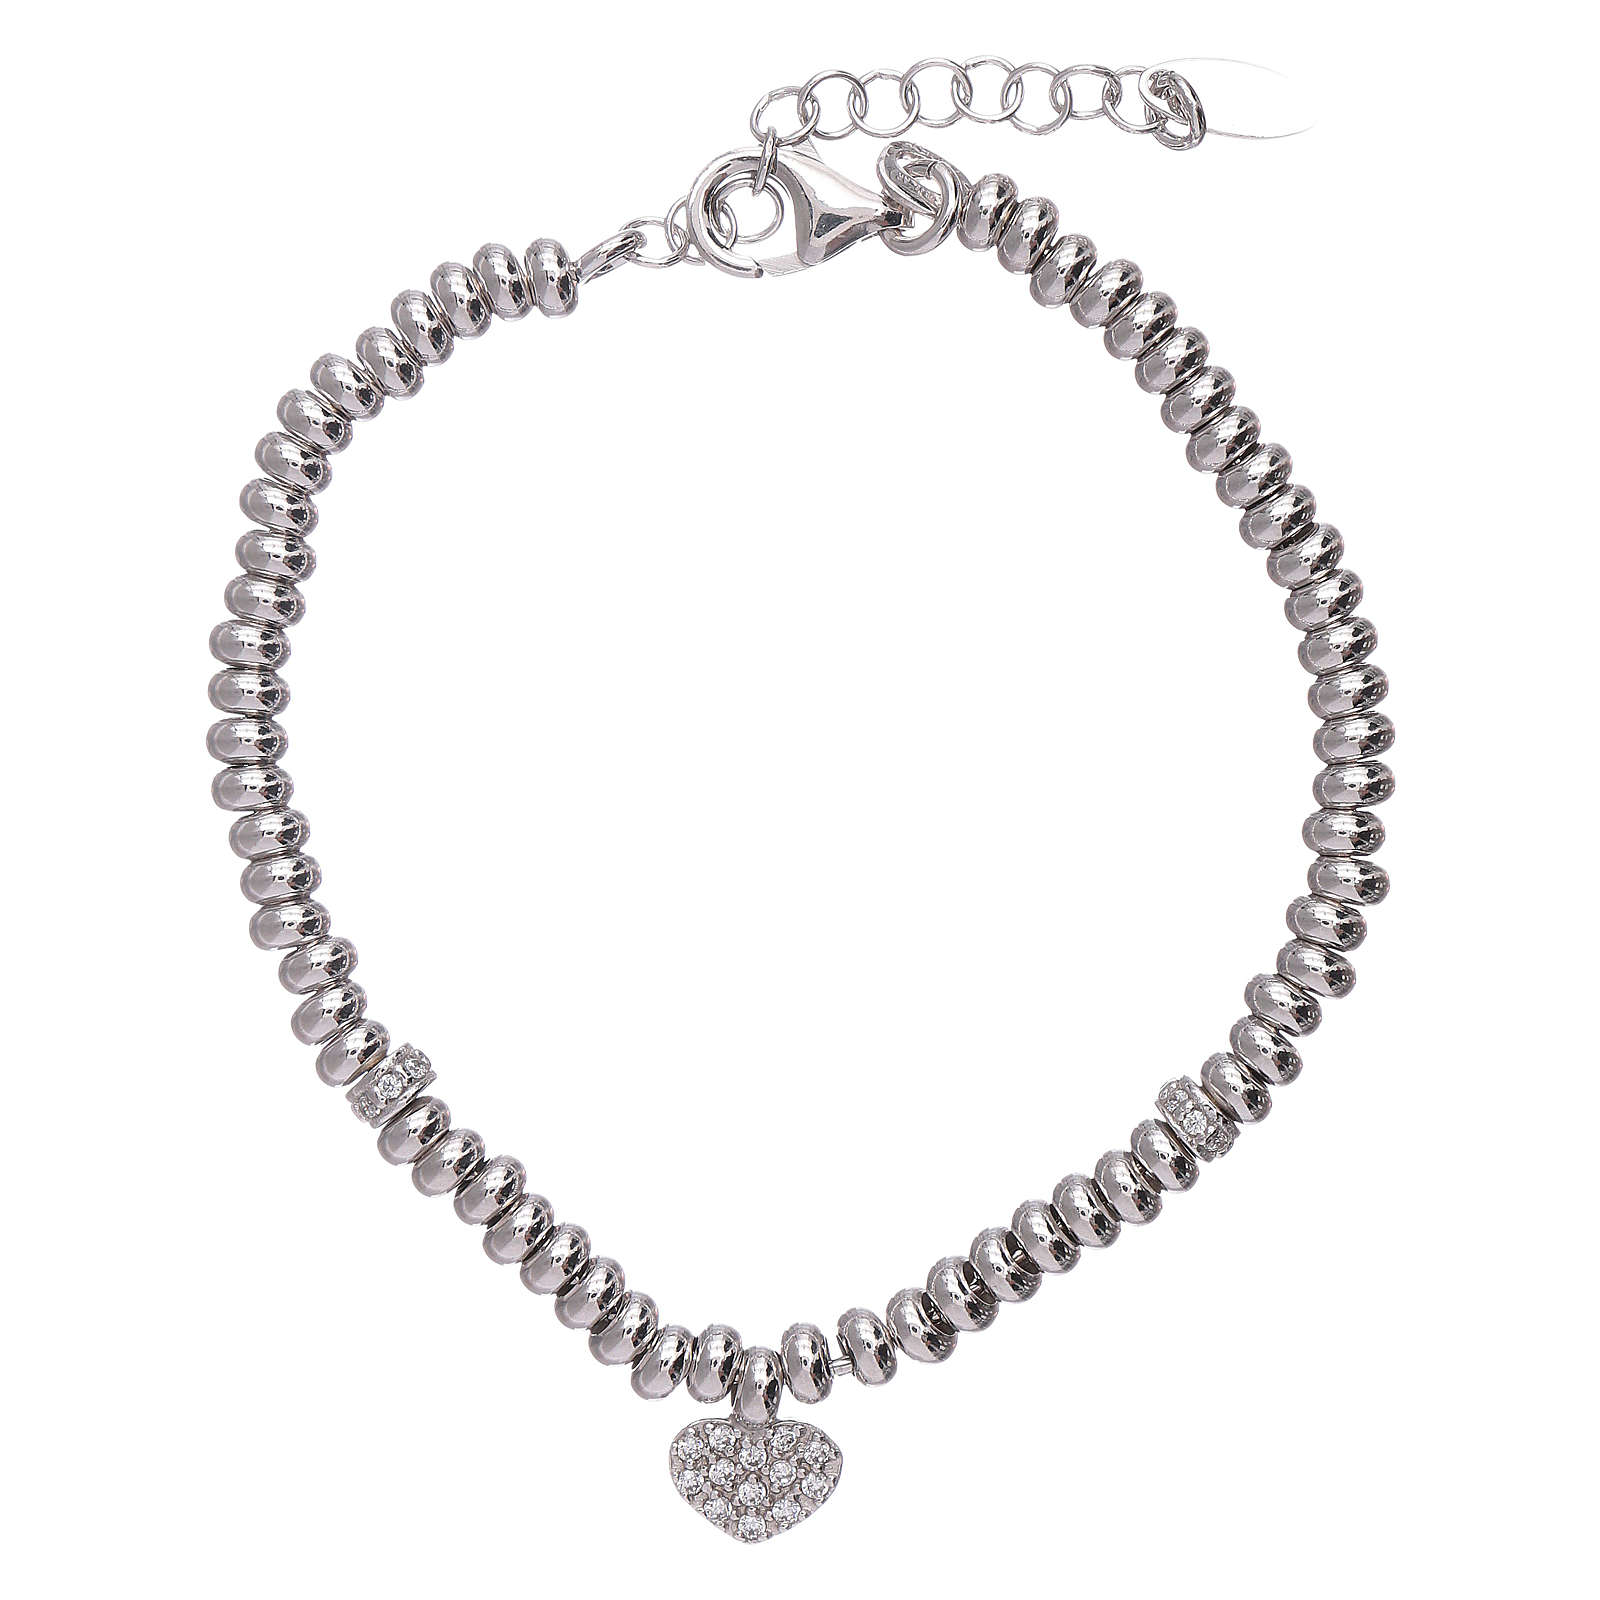 AMEN 925 sterling silver bracelet finished in rhodium and zirconate heart 4